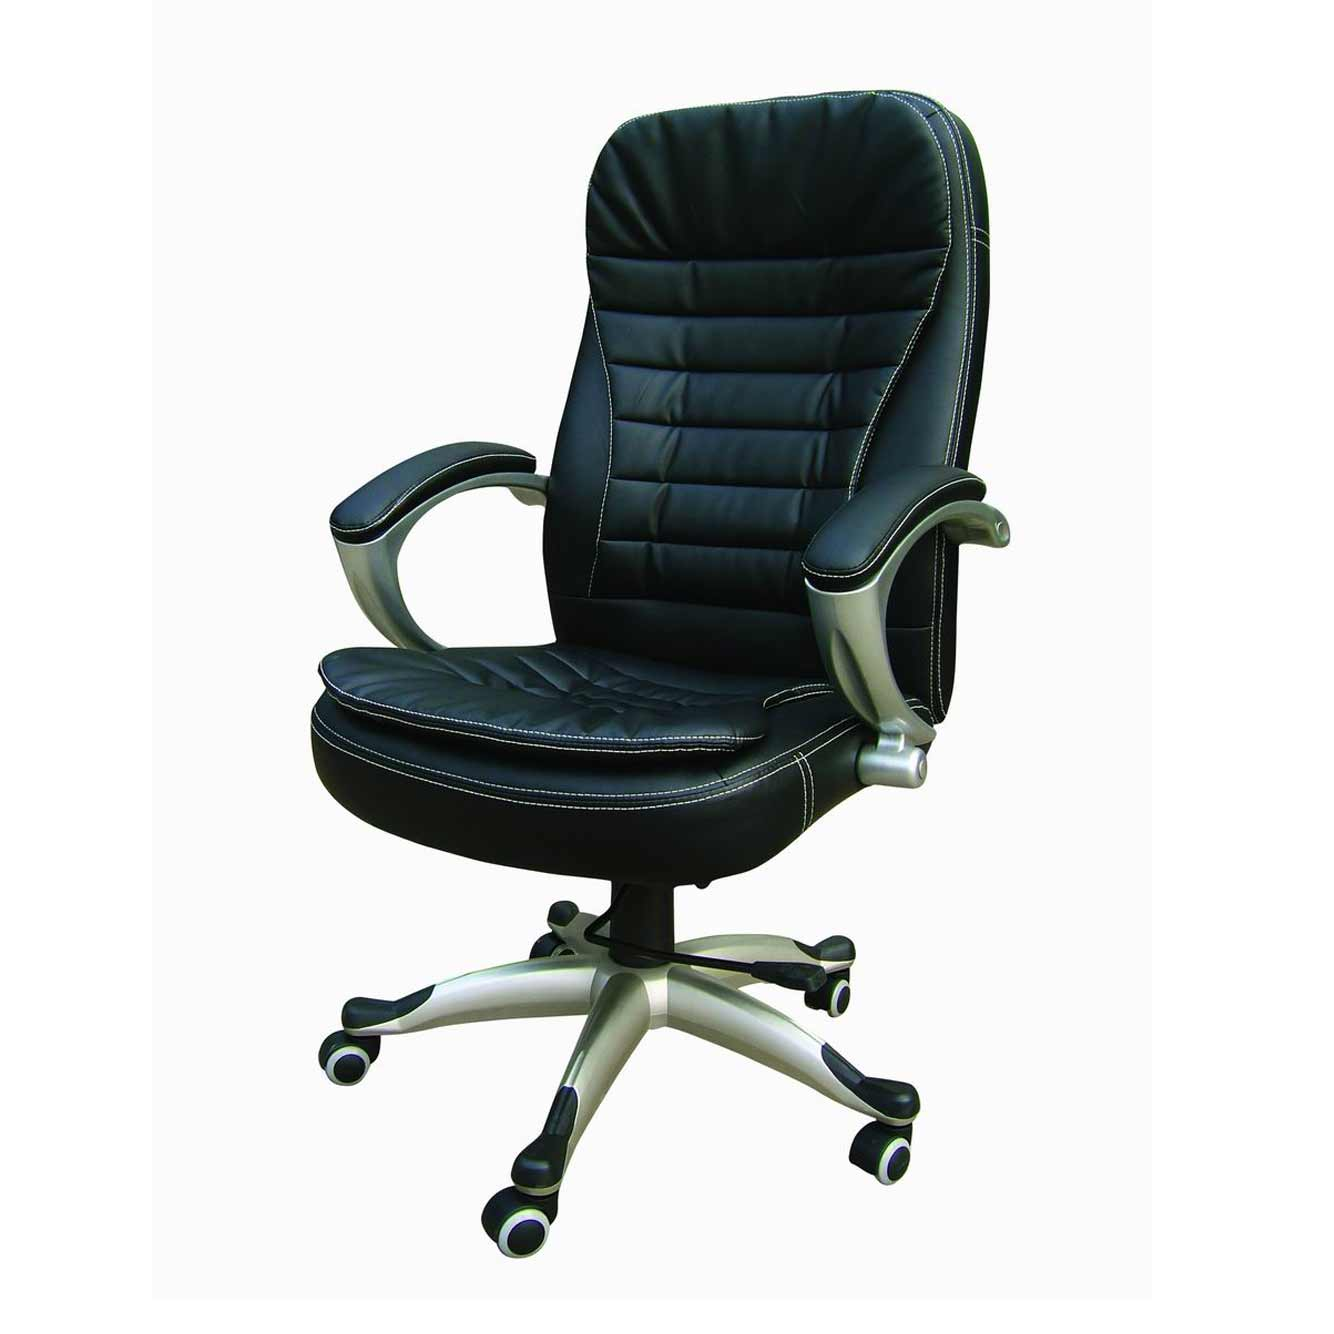 Ergonomic Chair Large Office Chair For Executive